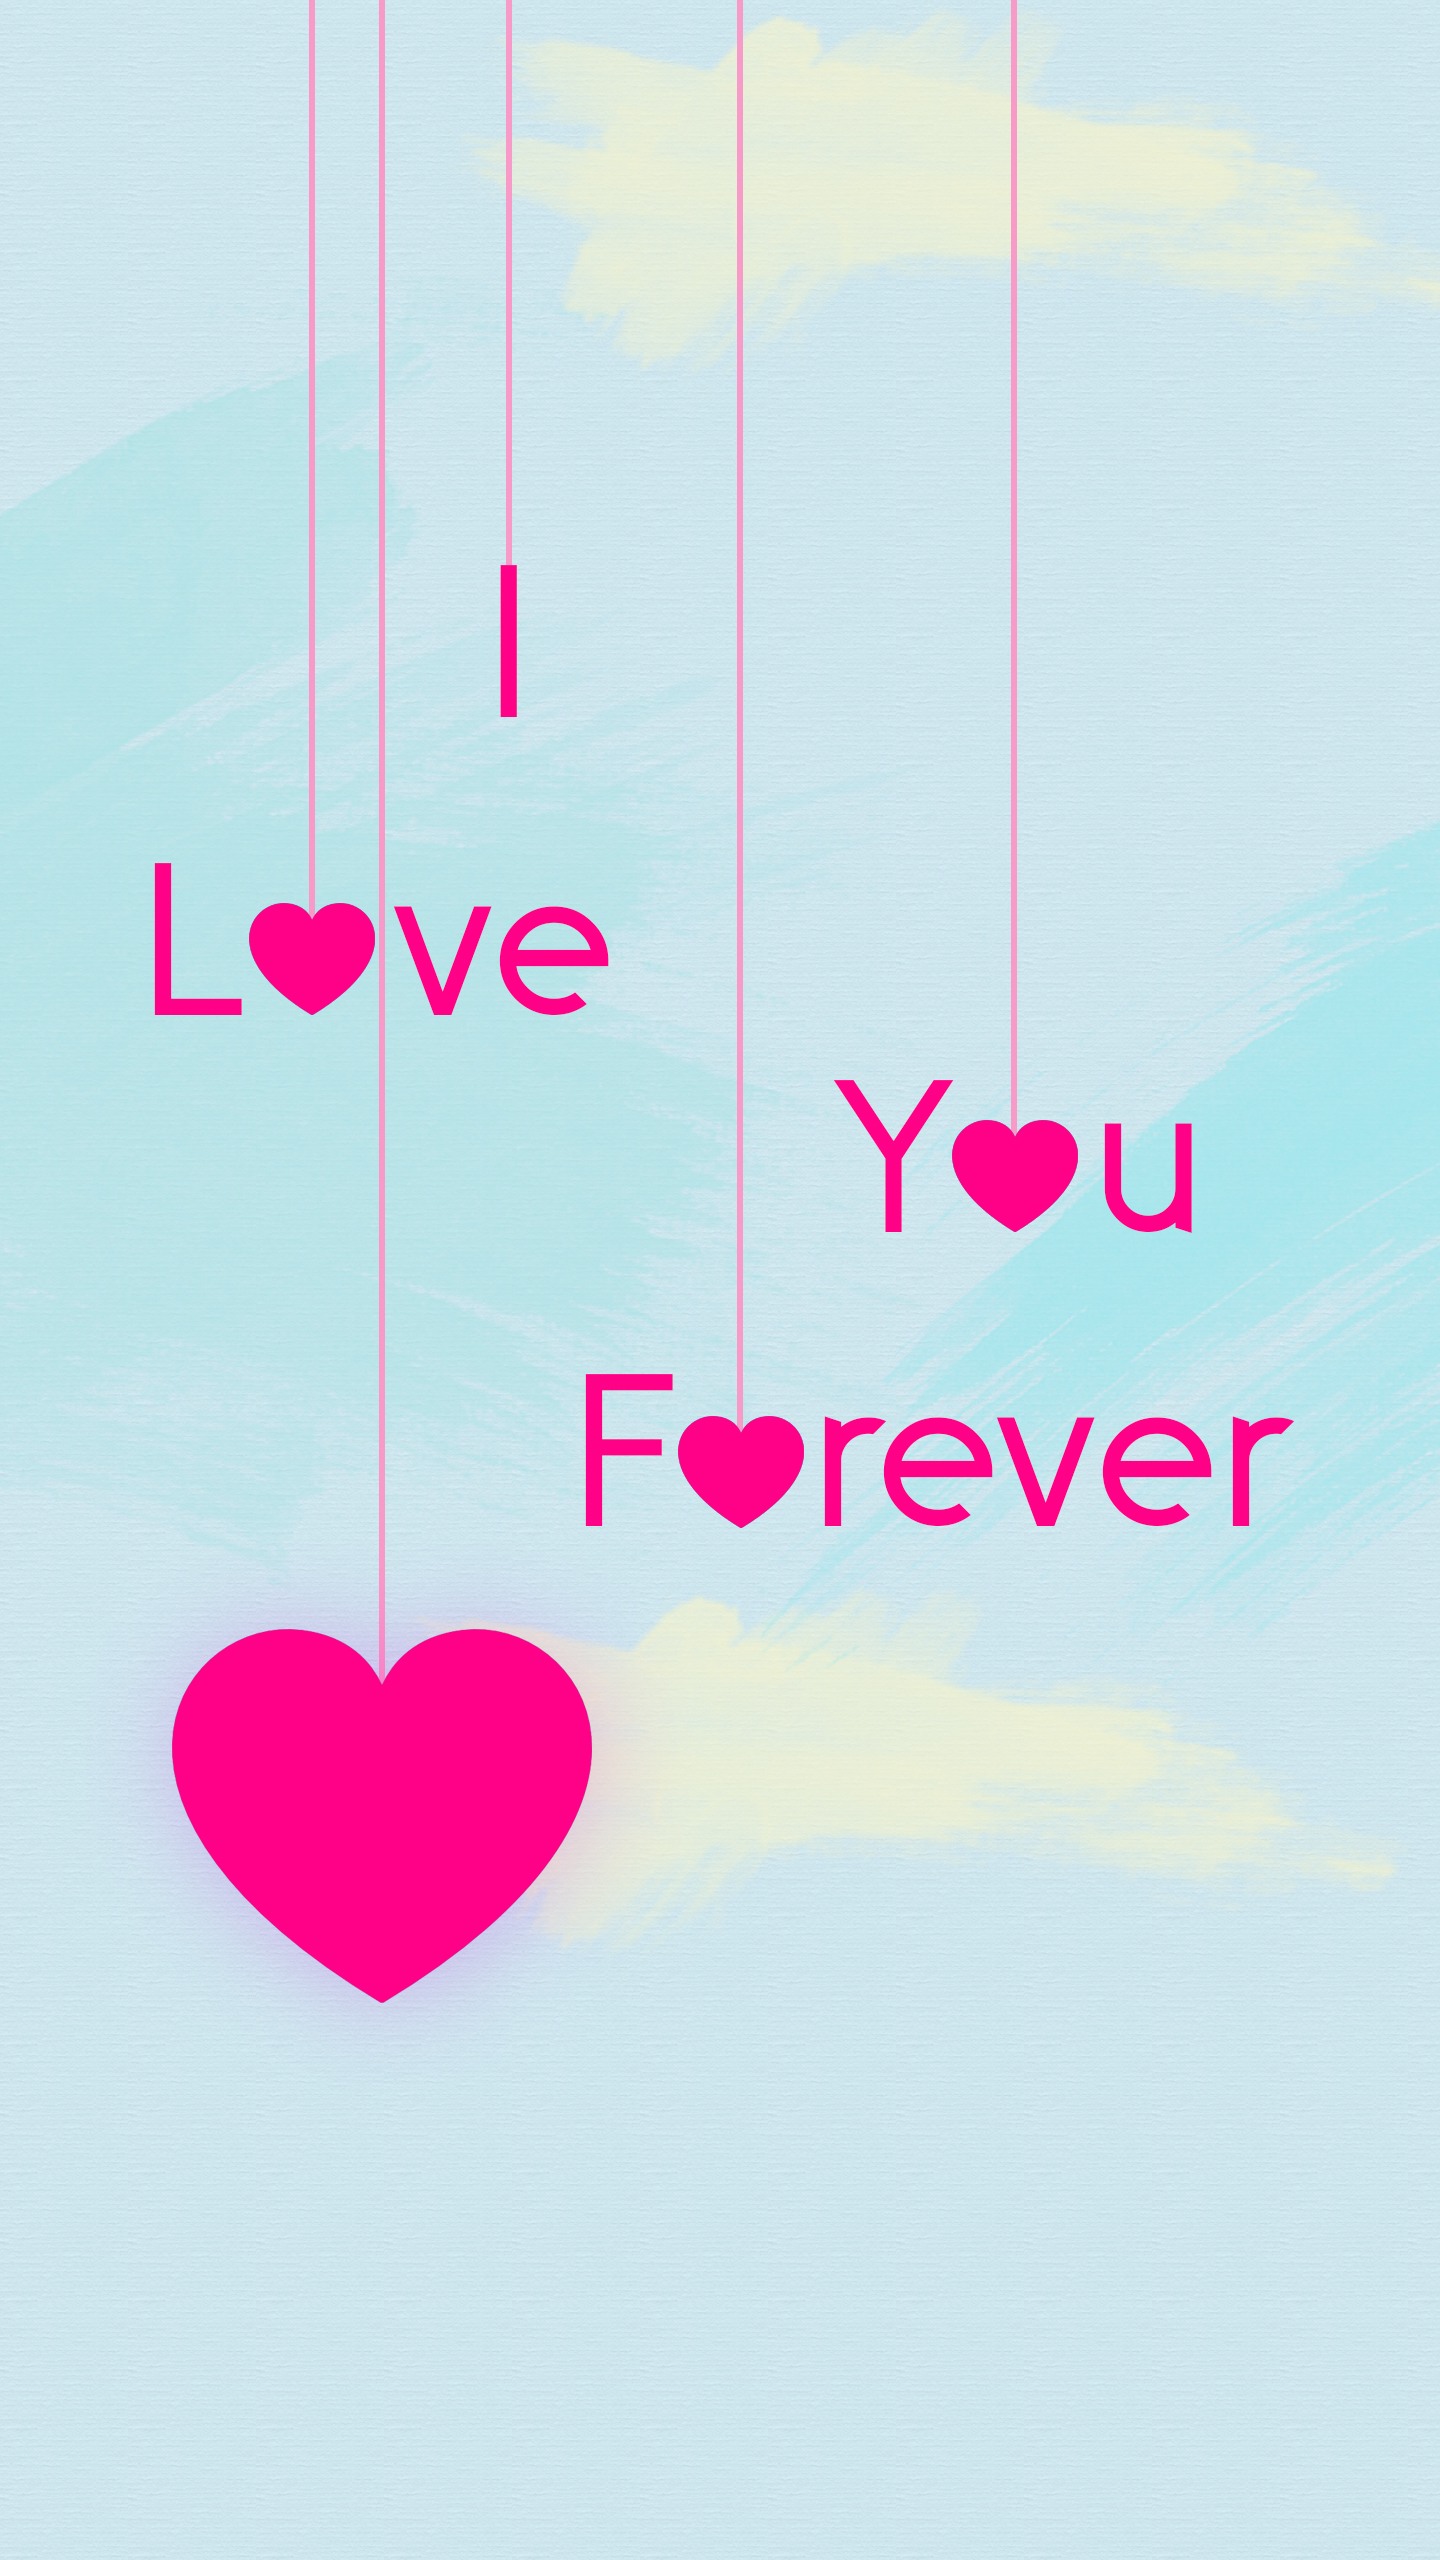 I Love You Wallpaper Iphone 5 : I Love You Forever Wallpapers Galaxy by Mattiebonez on ...